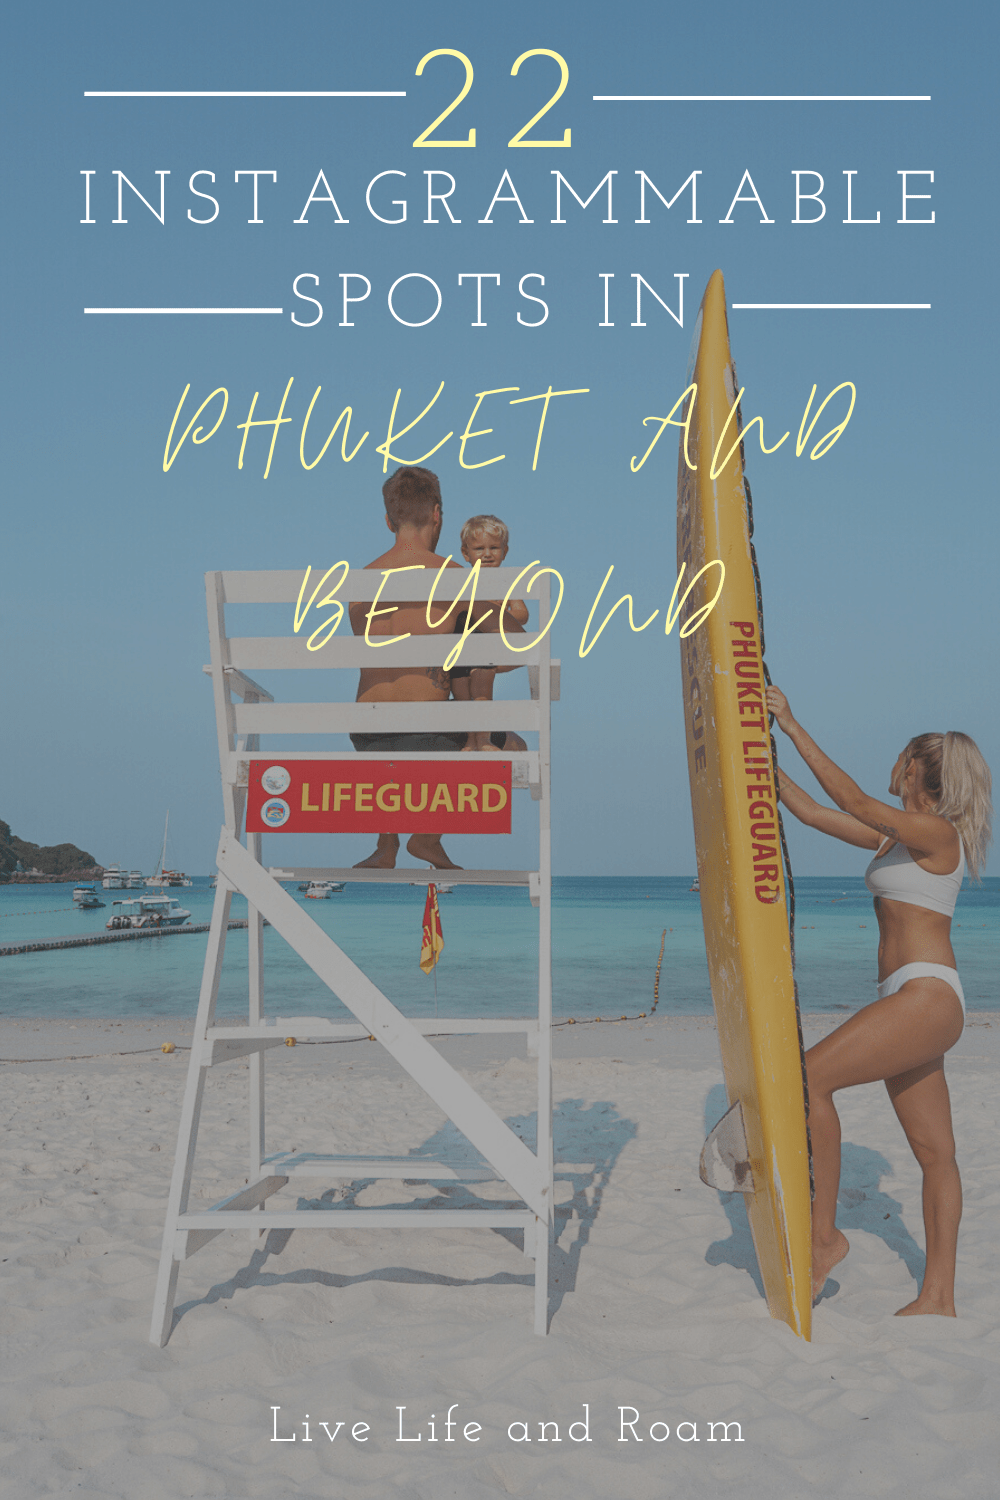 22 Instagrammable Spots in Phuket and Beyond